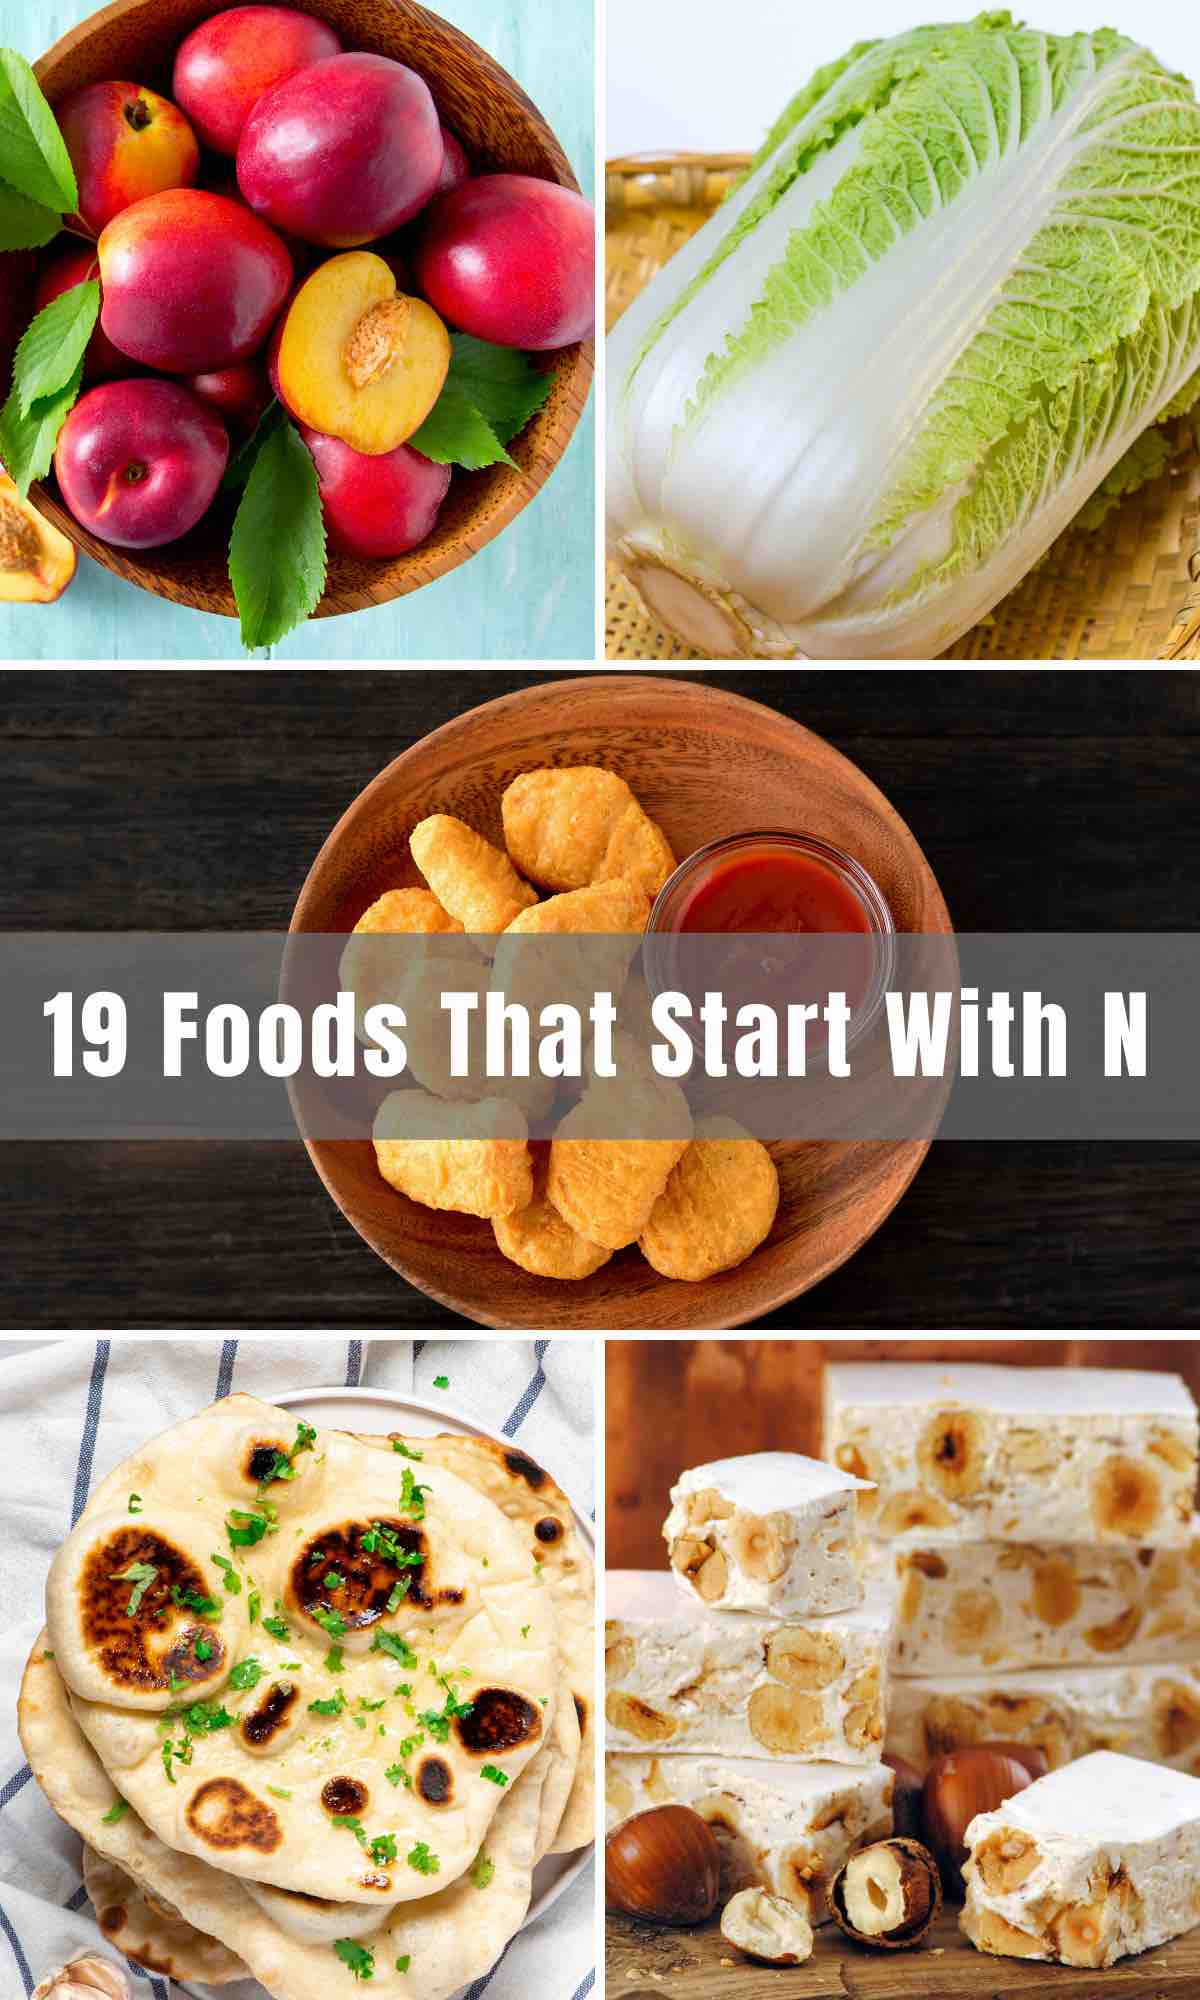 Foods that start with 'N' – let your mind wander. From bread to vegetable and rice dishes, soups, pizzas, fruits, nuts, and chocolate treats, we'll give you a scouting report on them all!